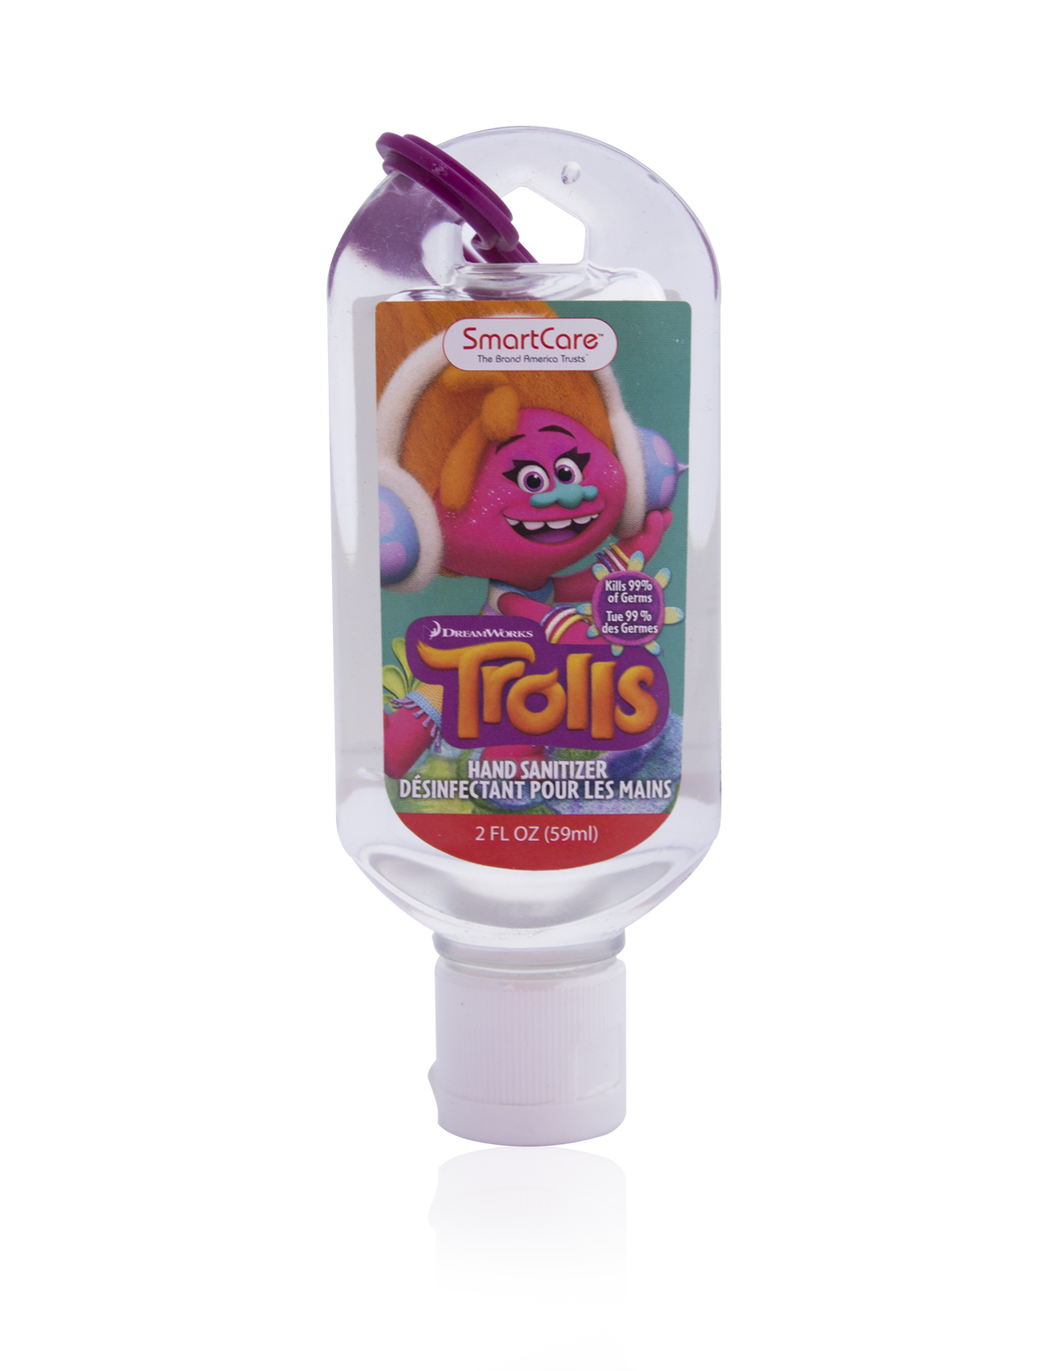 Smart Care Trolls Hand Sanitizer (2 Fl. Oz)